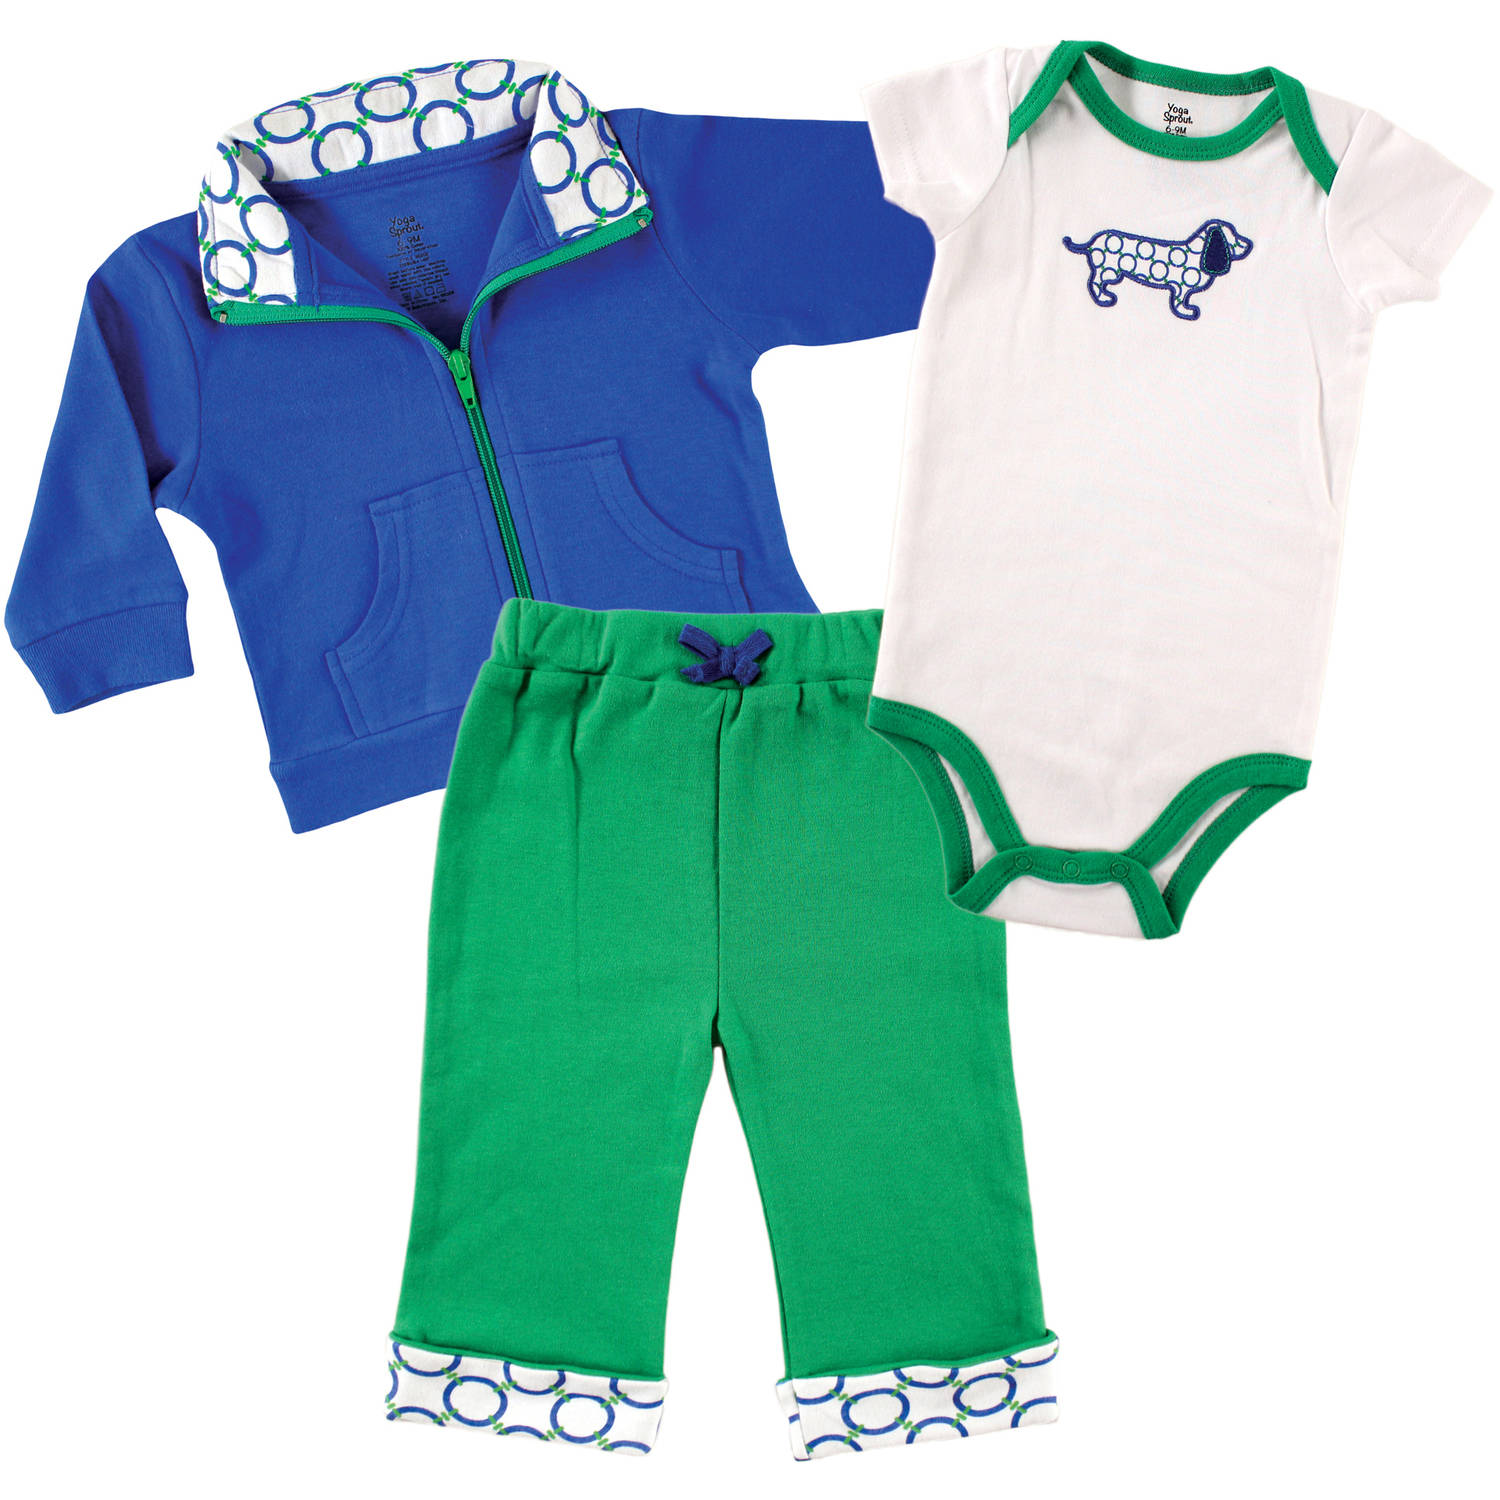 Yoga Sprout Newborn Baby Boys Jacket, Bodysuit & Pant - Dog